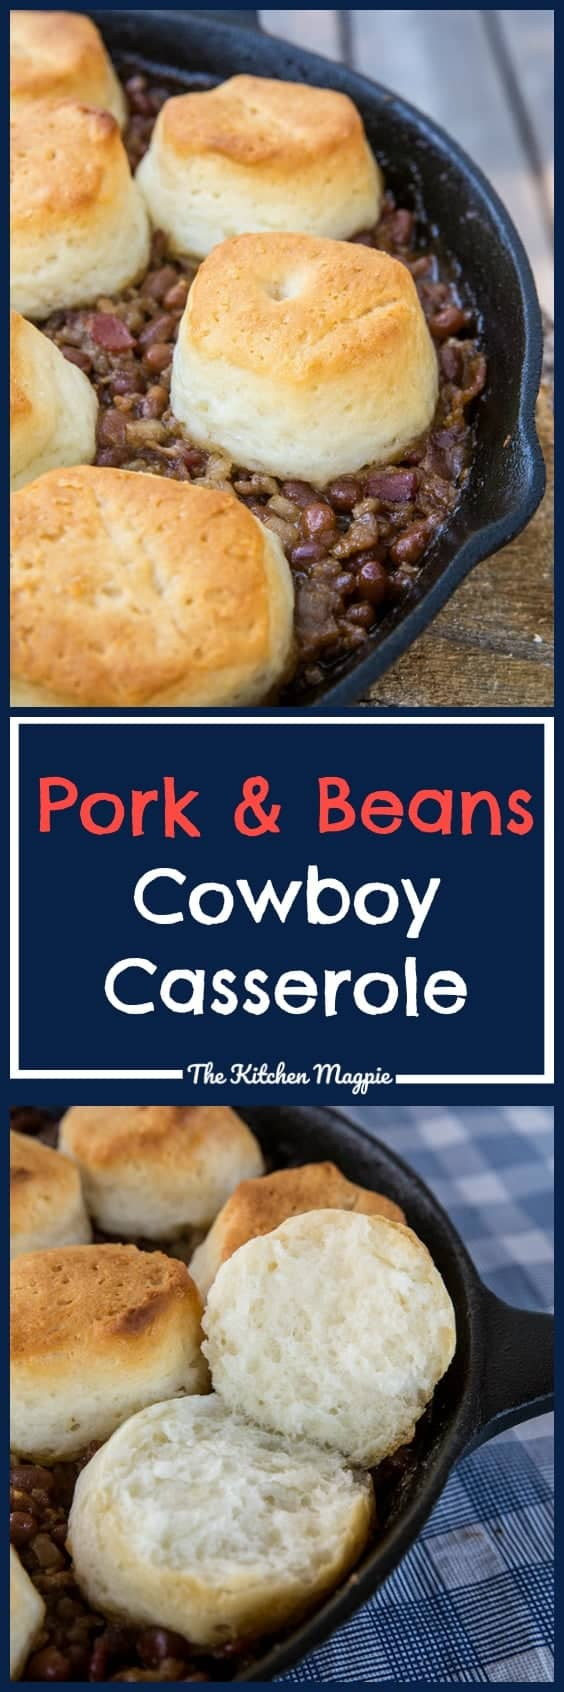 This delicious Pork & Beans Cowboy Casserole is bound to be a new family favourite for camping OR at home! Beans, bacon & biscuits = cowboy perfection! #camping #cowboy #porkandbeans #campfire